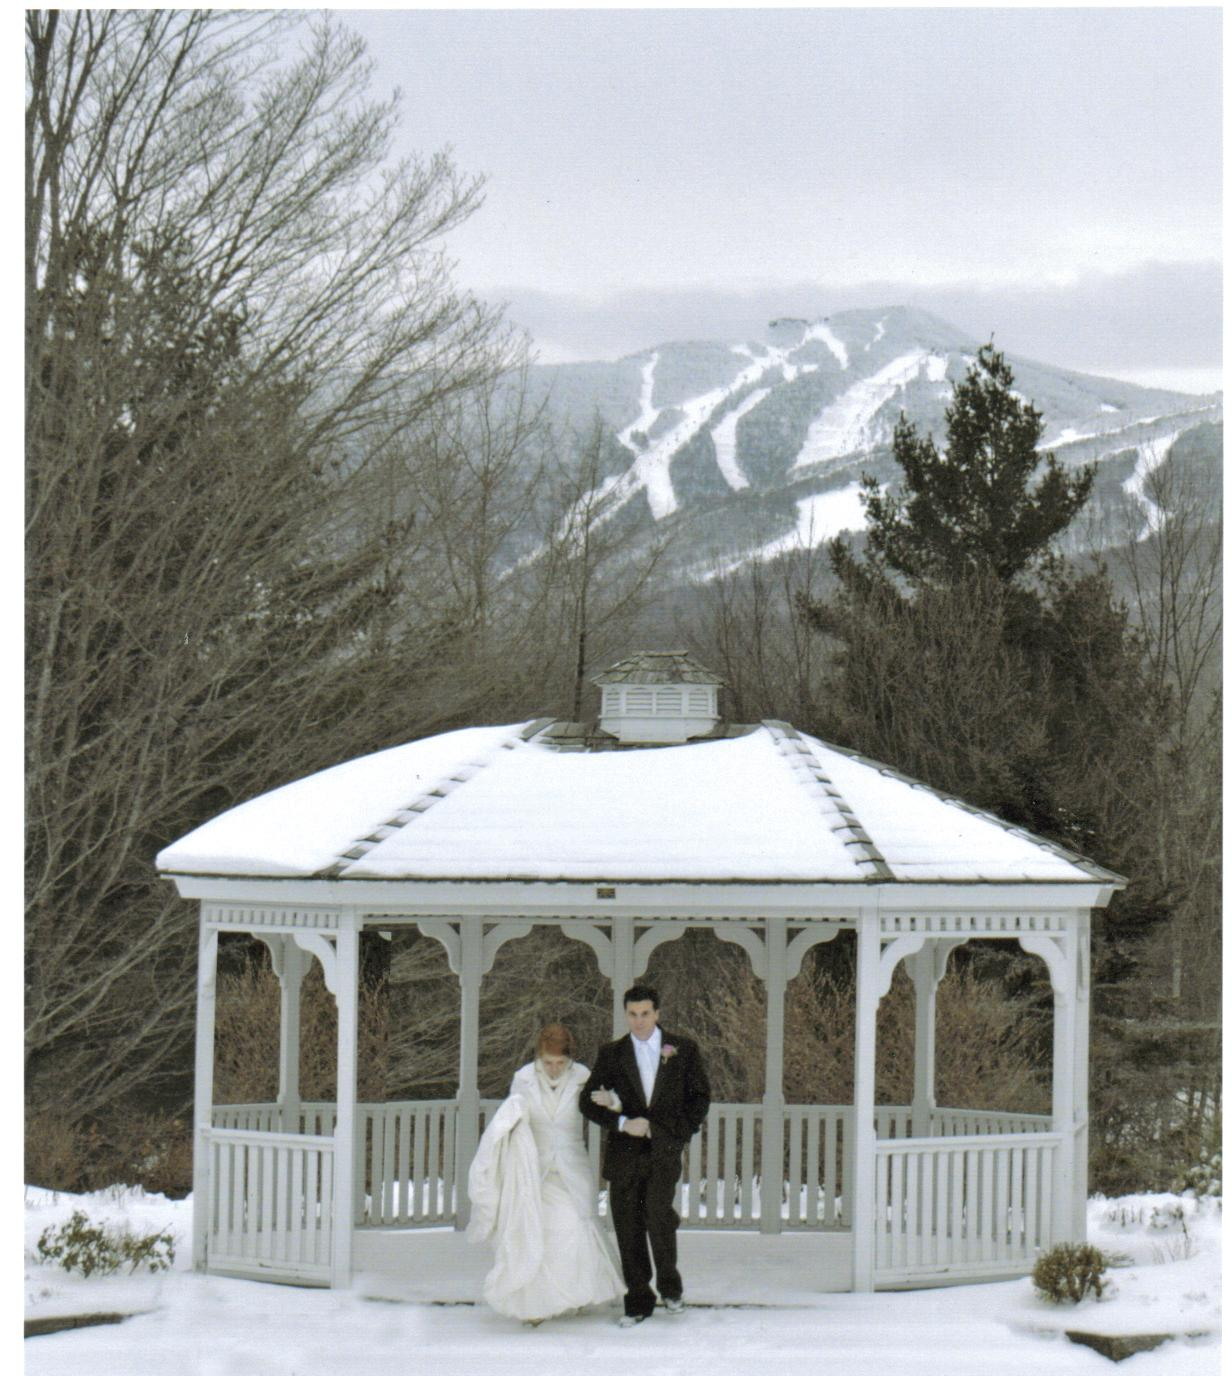 Winter weddings the summit lodge killington vermont a fairytale winter wedding junglespirit Image collections